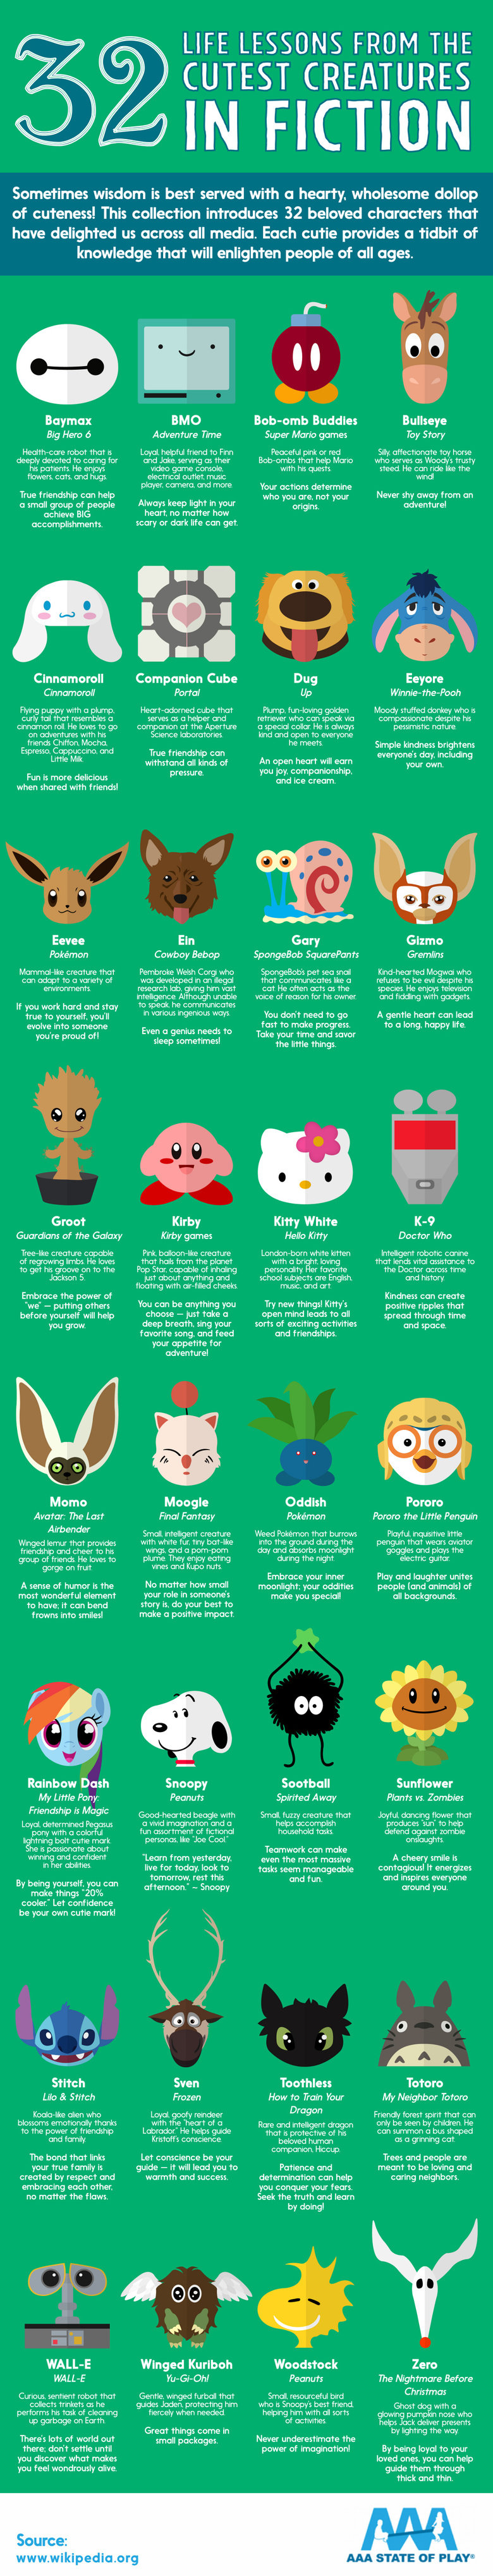 Life Lessons From 32 Cute Characters. Who is the cutest of them all!? Original source: .. everything here is a super cutsie companion character filled with love and affection except the companion cube. The companion cube is a box with a heart on it t